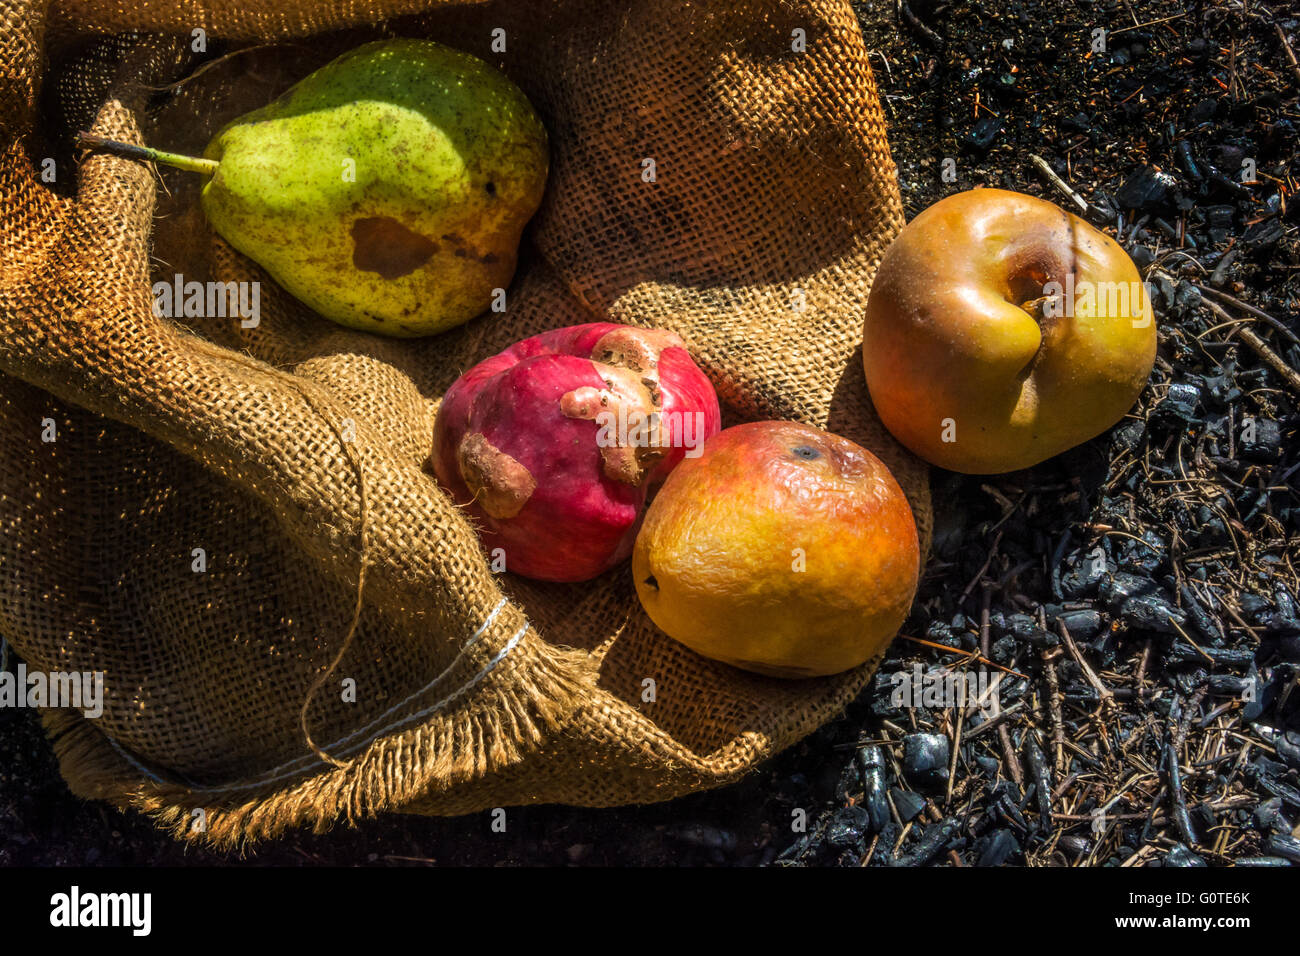 Unappealing, rotten fruit tumble from a burlap bag onto scorched ground - Stock Image